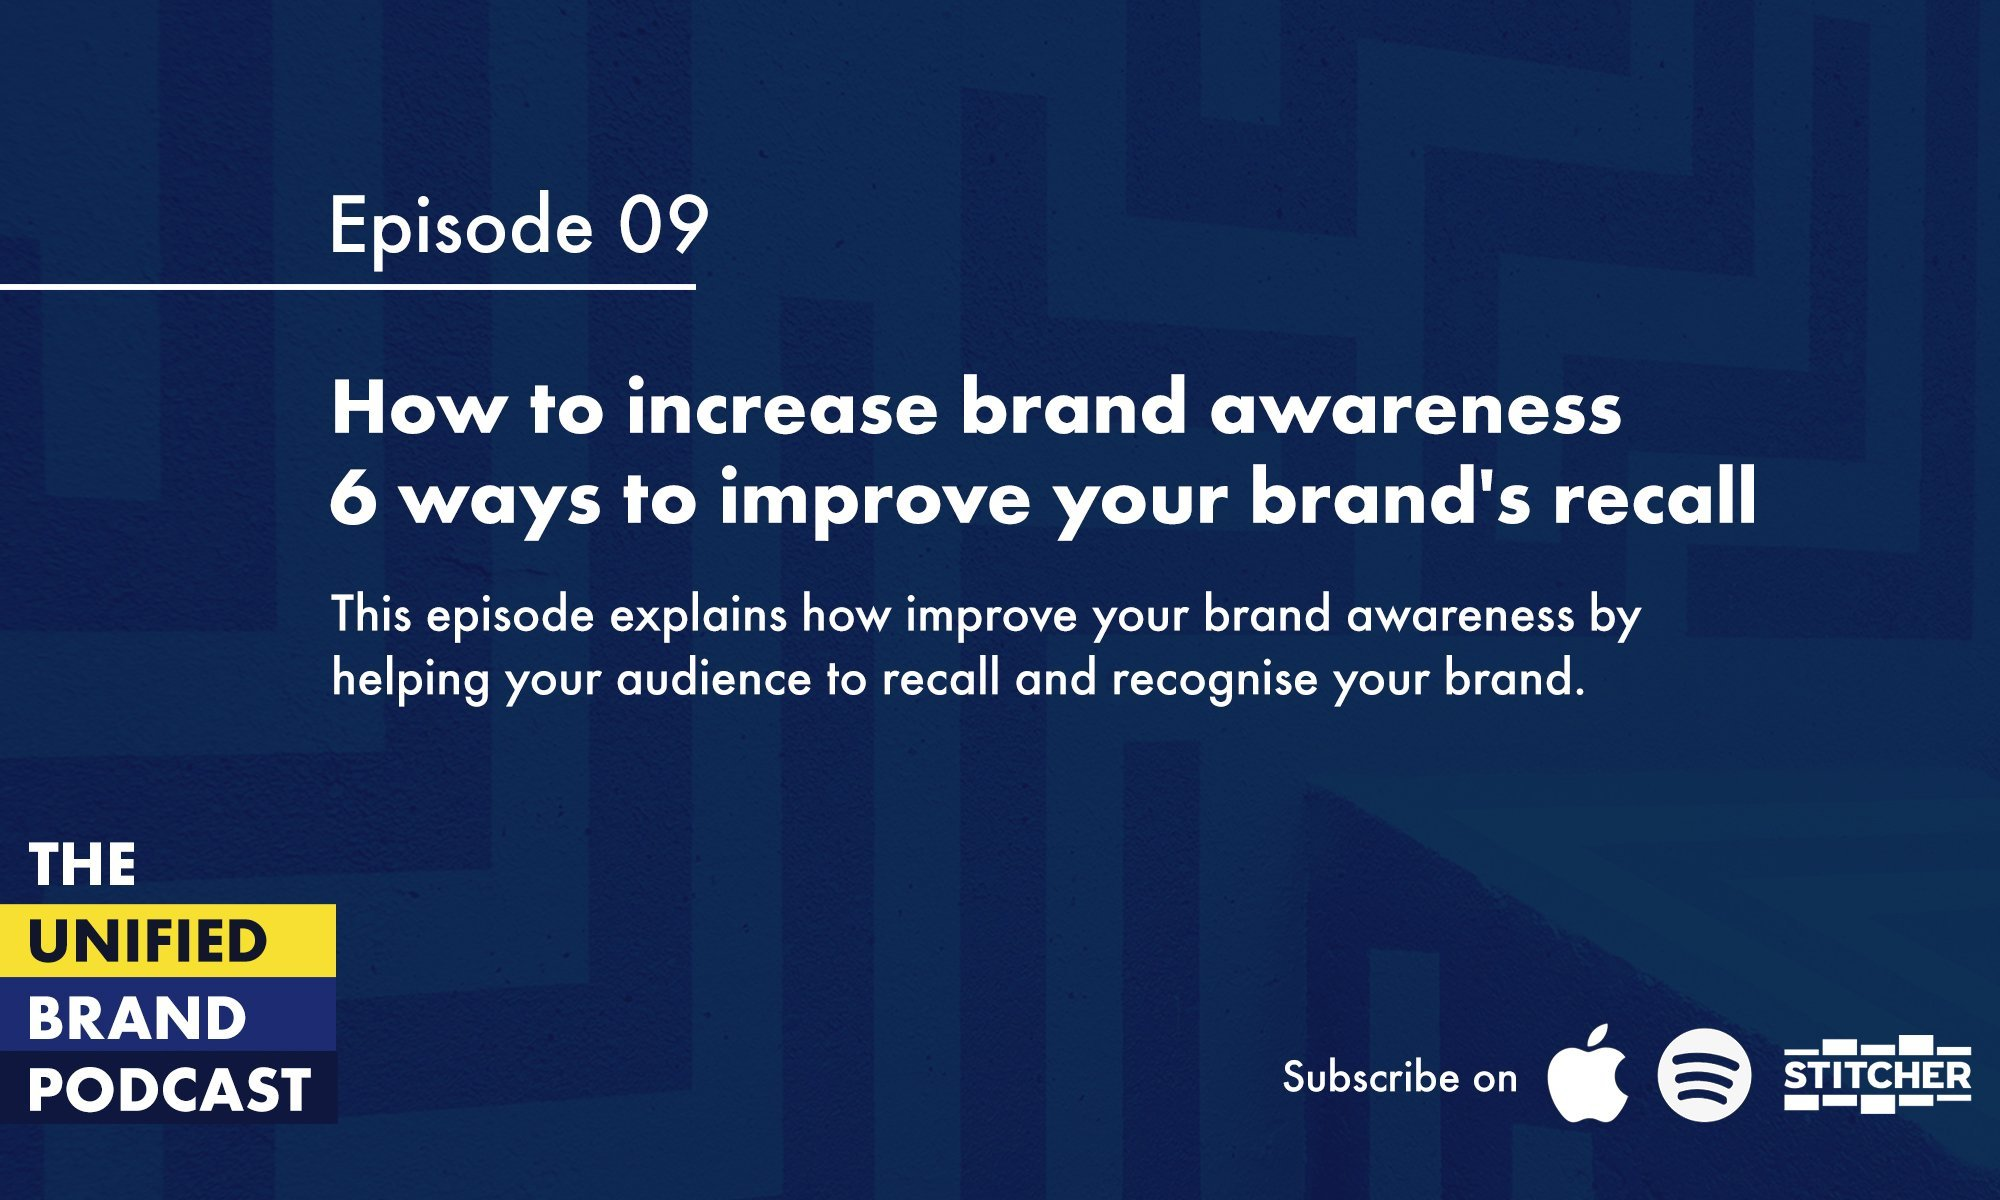 How to increase brand awareness